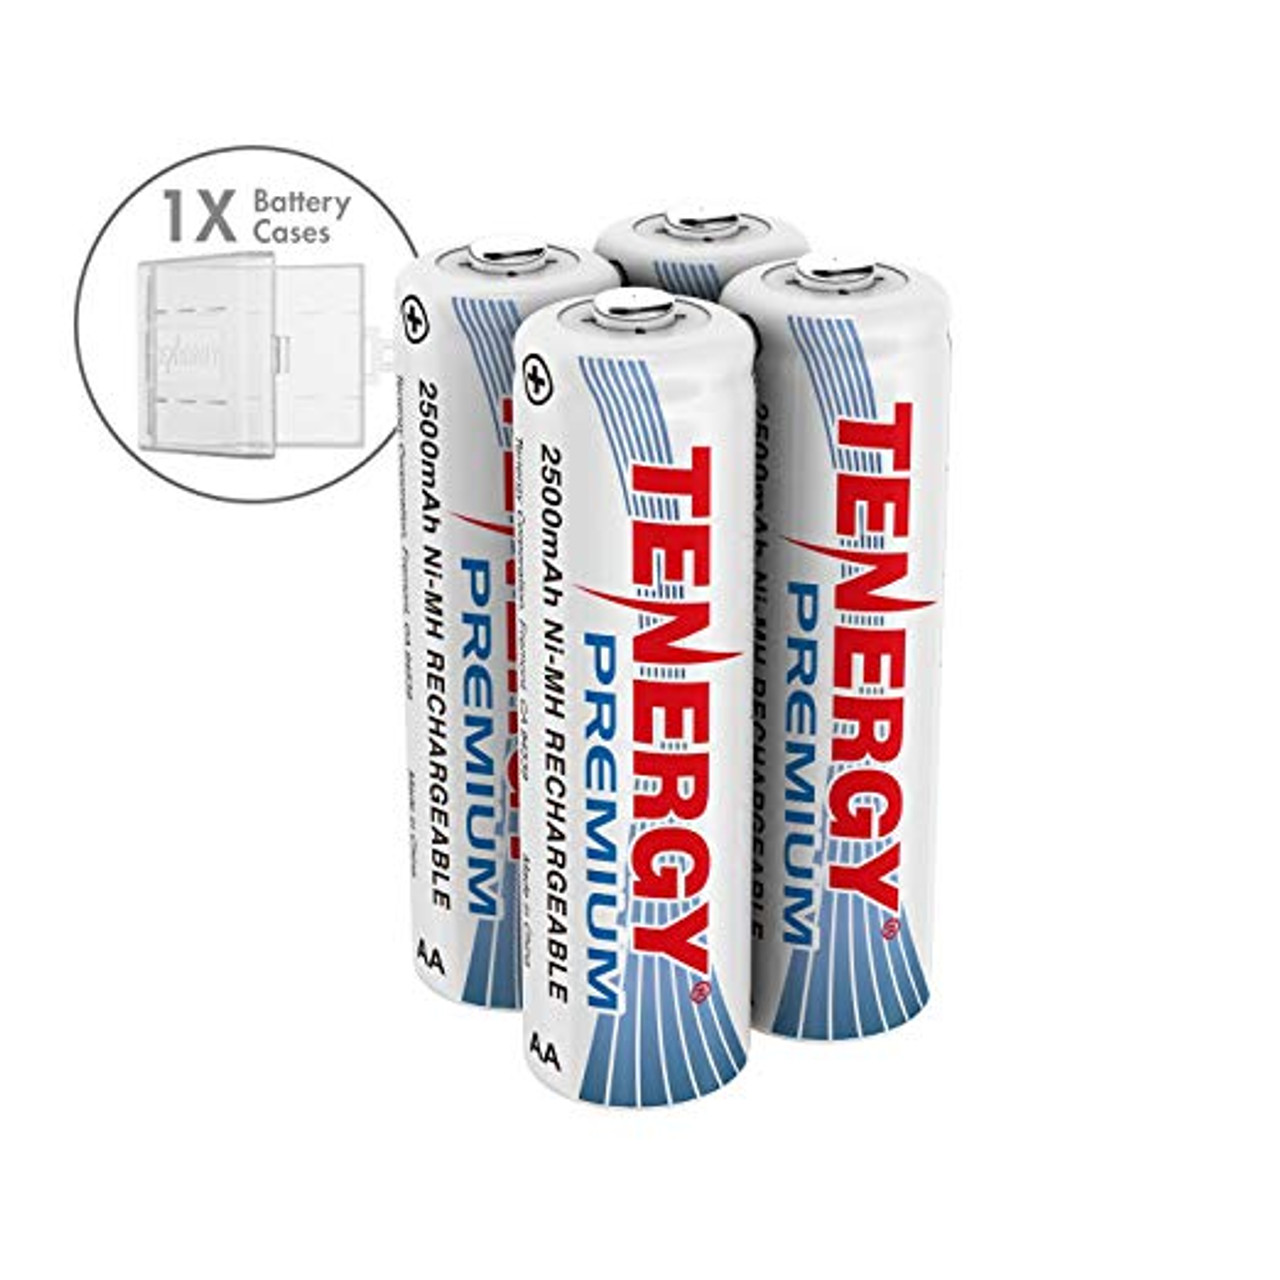 Combo: 4 pcs Tenergy Premium AA 2500mAh NiMH Rechargeable Batteries + 1 AA Size Holder